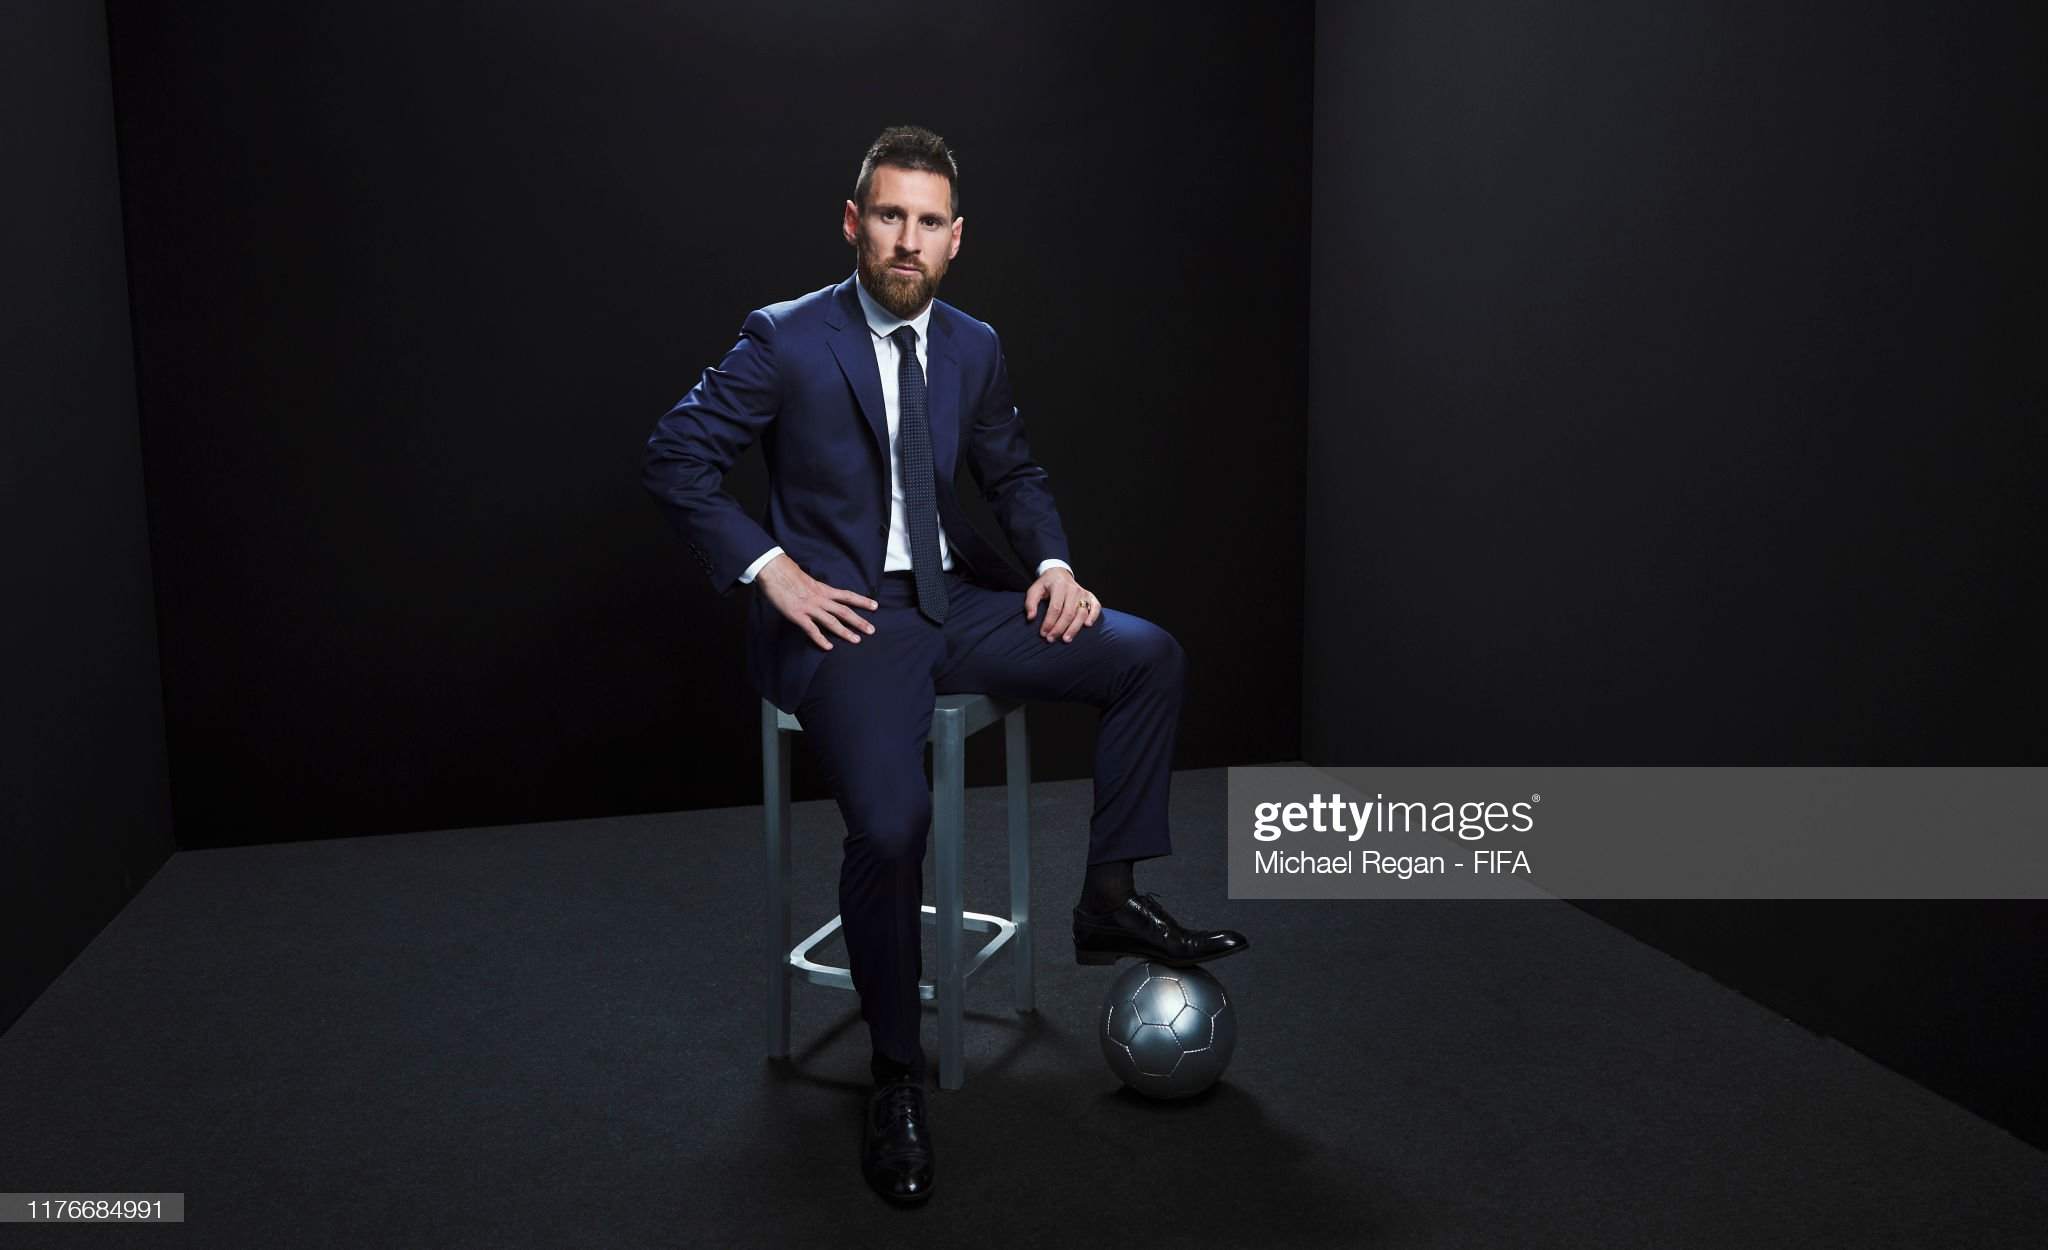 The Best FIFA Football Awards 2019 Lionel-messi-of-barcelona-poses-for-a-portrait-in-the-photo-booth-to-picture-id1176684991?s=2048x2048